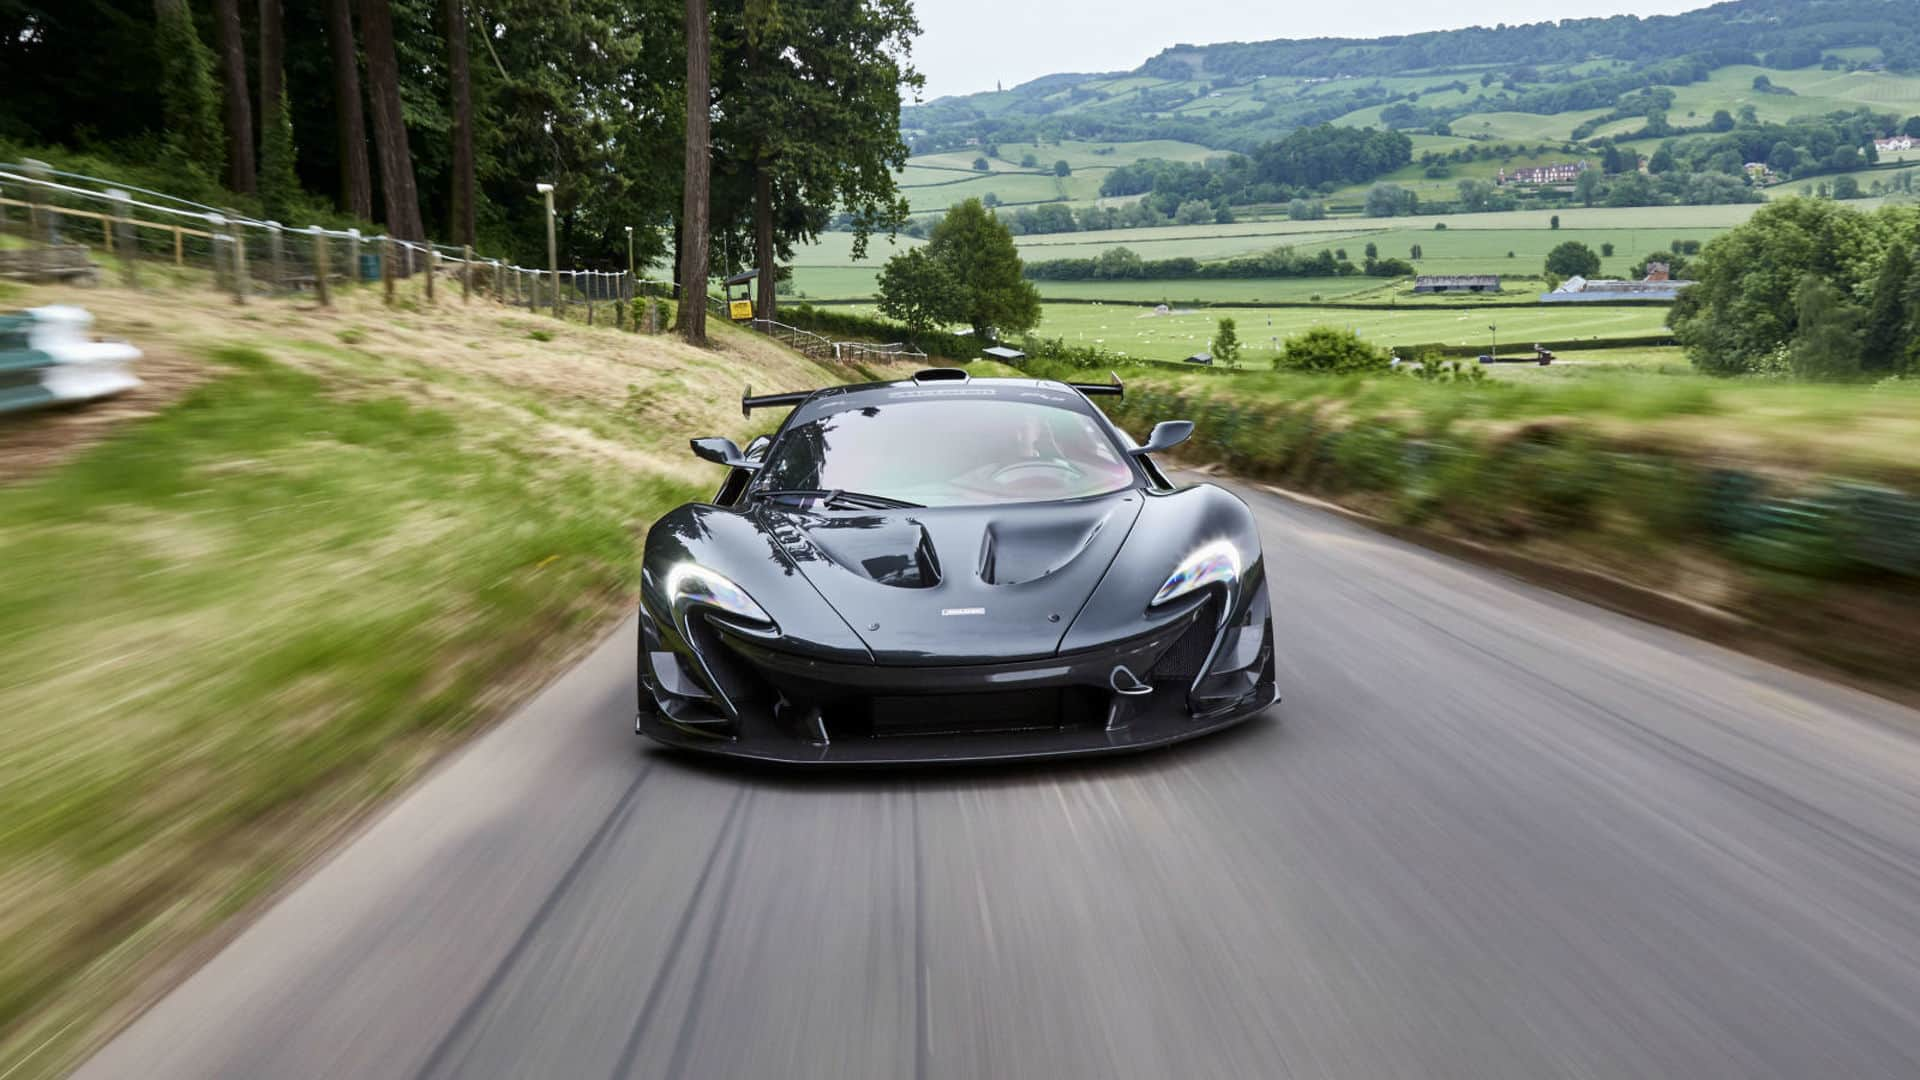 The Stig Probably Dreams About The Mclaren P1 Lm